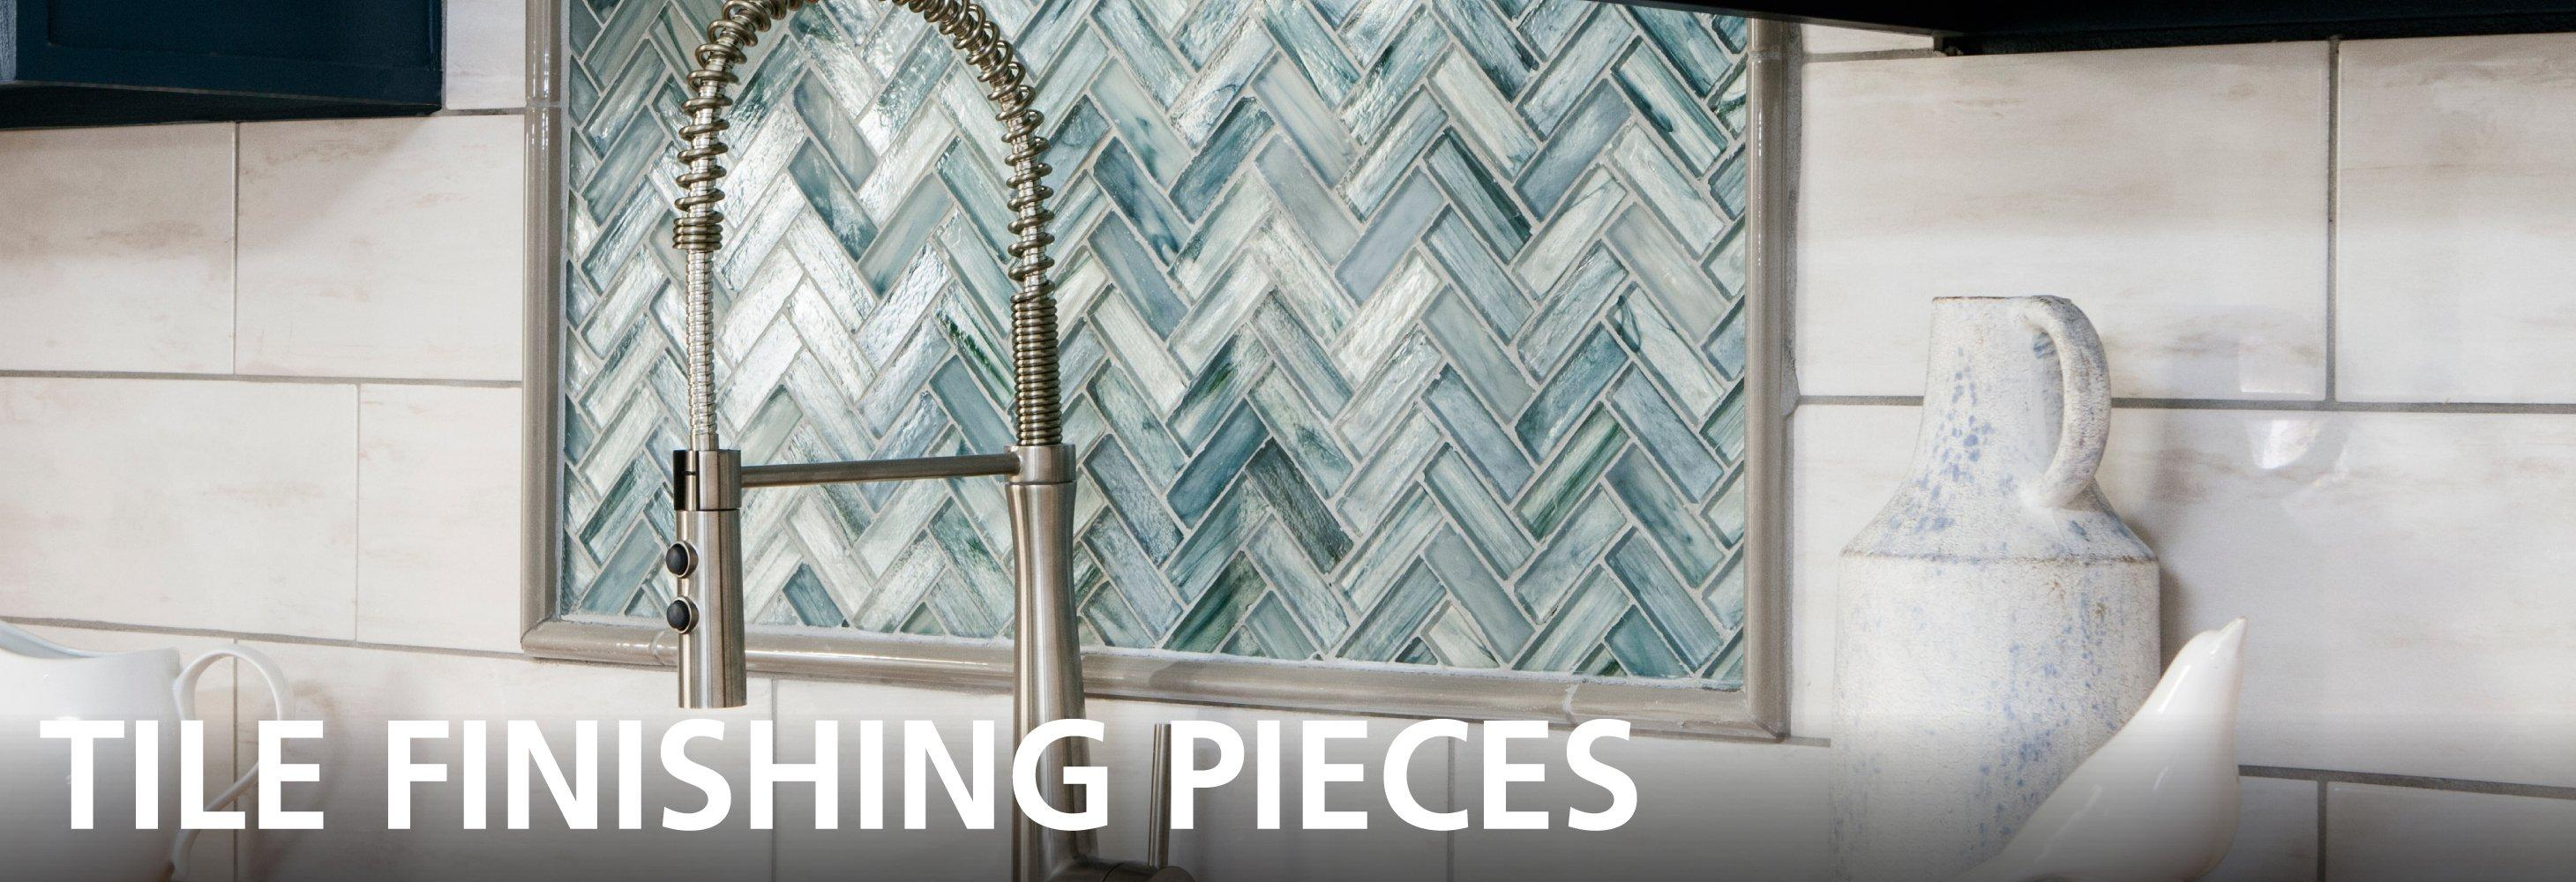 Tile Finishing Pieces